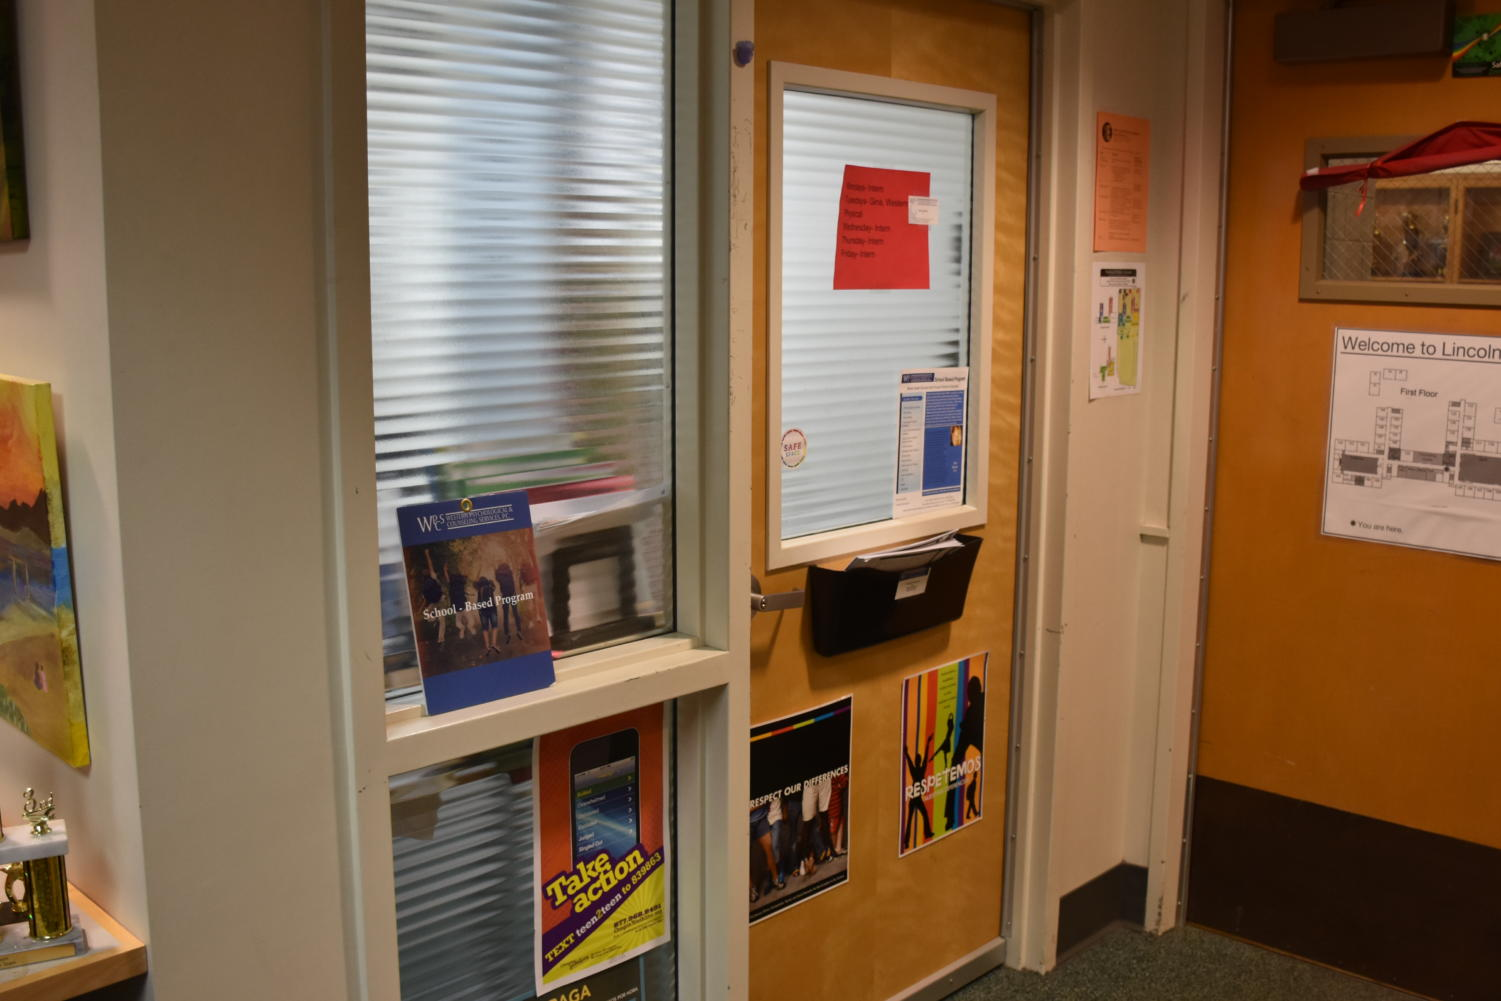 This office in the counseling center is home to two mental health support professionals, Gina Batliner and Judy Herzberg. They are resources for students who experience sexual misconduct by teachers.